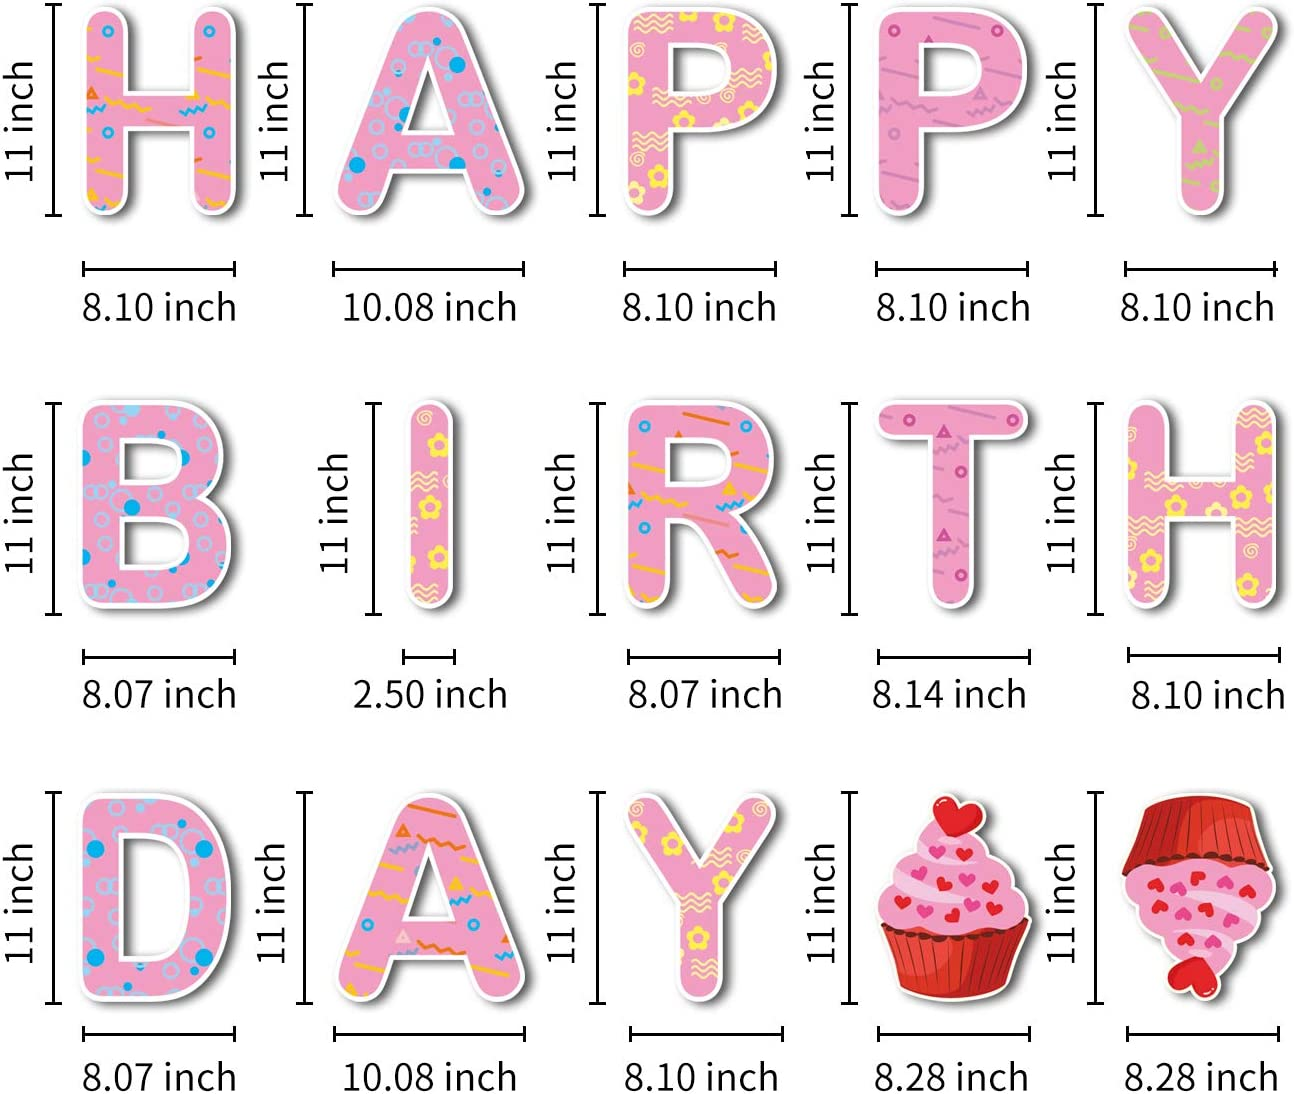 Perfect Outdoor Lawn Decorations with Bright /& Colorful Letters Made of Thick Weatherproof Corrugated Board and 30 Stakes GOKKCL 15 Packs Happy Birthday Yard Sign with Stakes